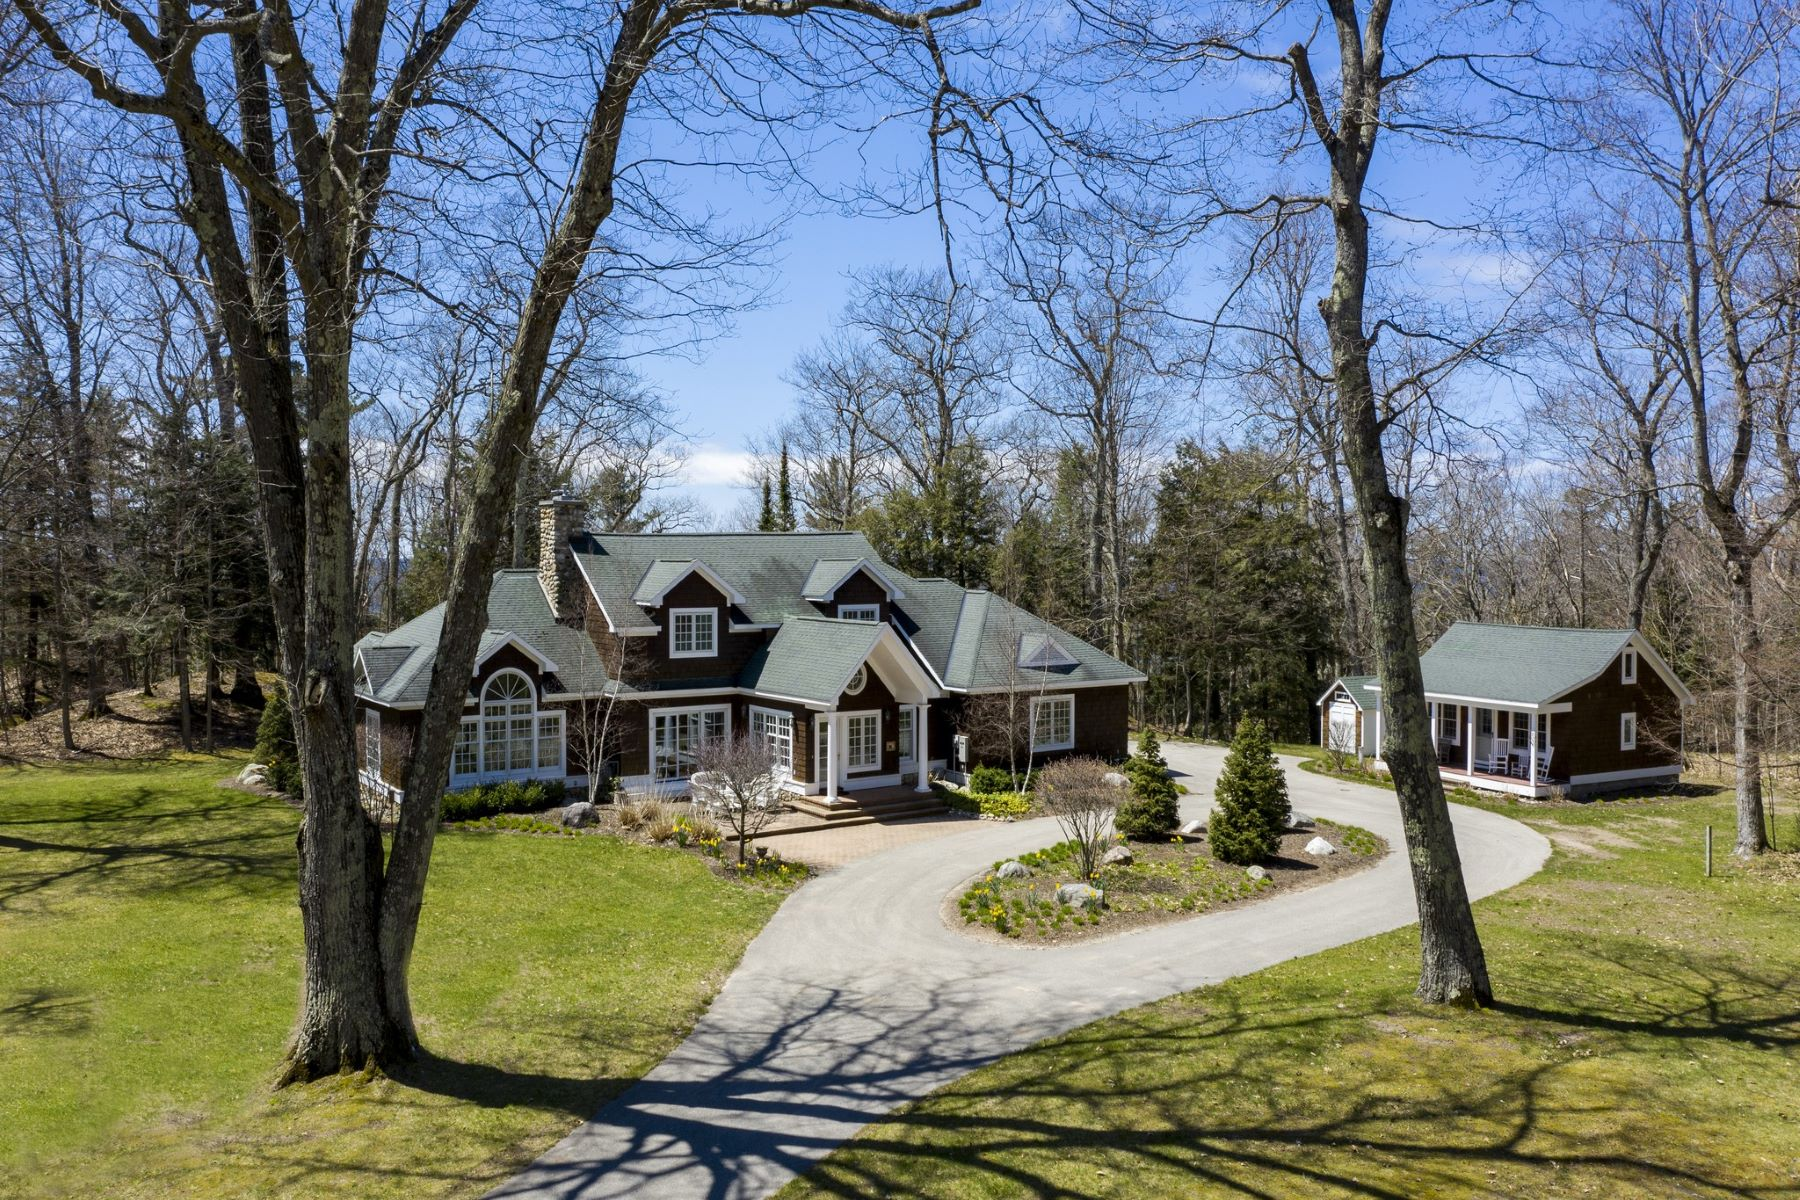 Single Family Homes for Sale at Spectacular Harbor Springs Home 4688 Lower Shore Drive Harbor Springs, Michigan 49740 United States